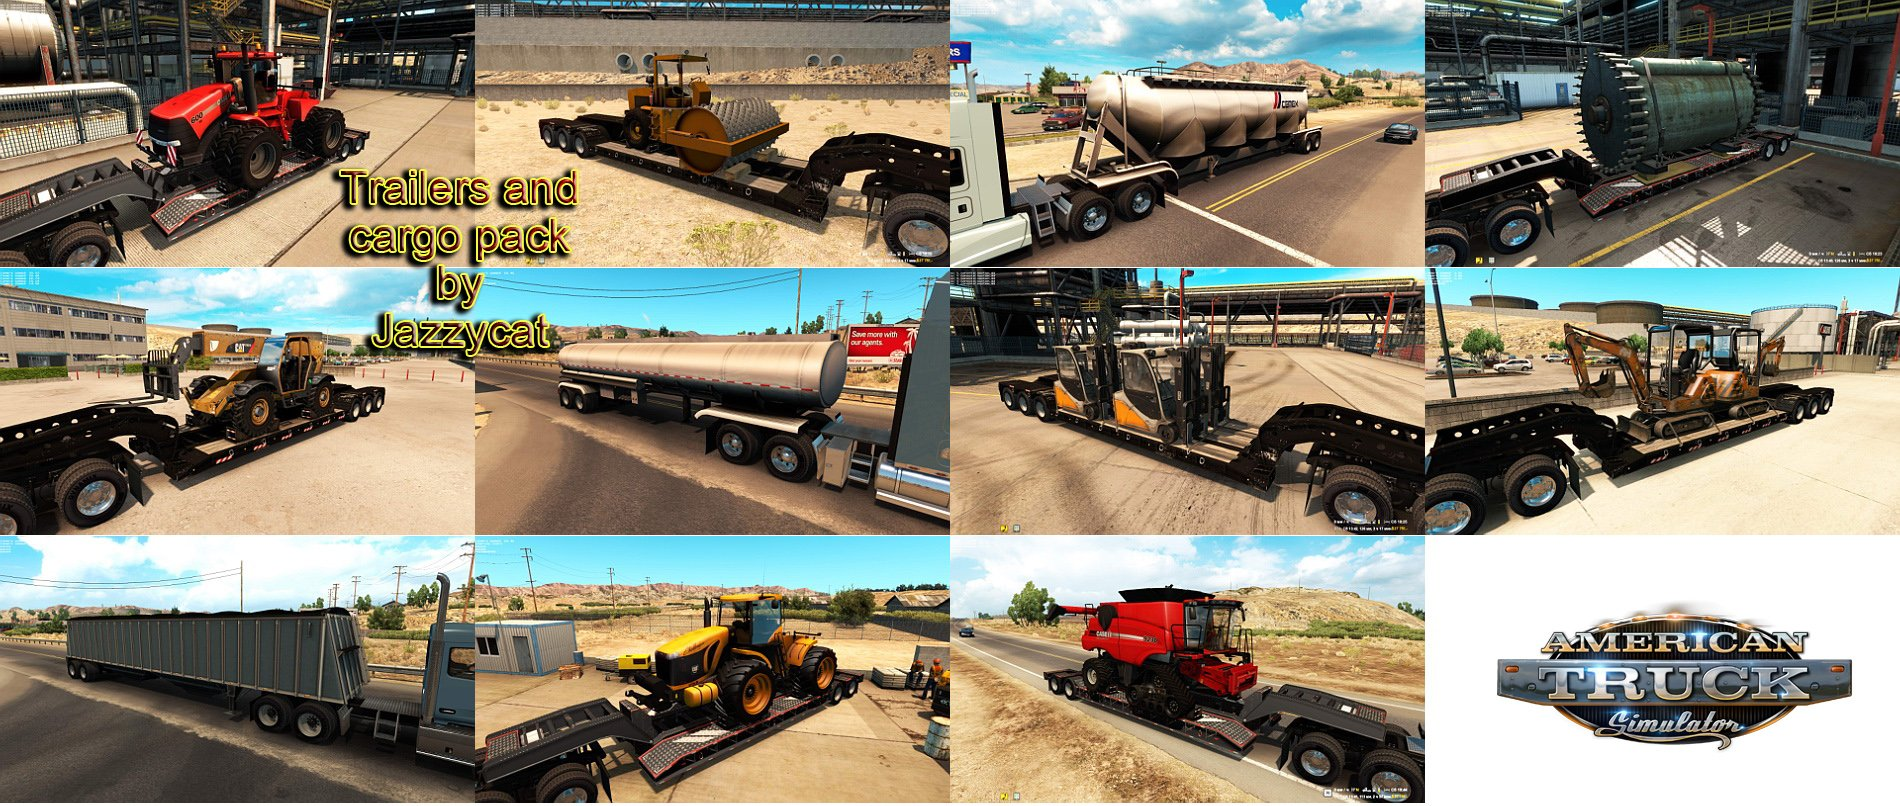 ATS Trailers and cargo pack v1.0 by Jazzycat